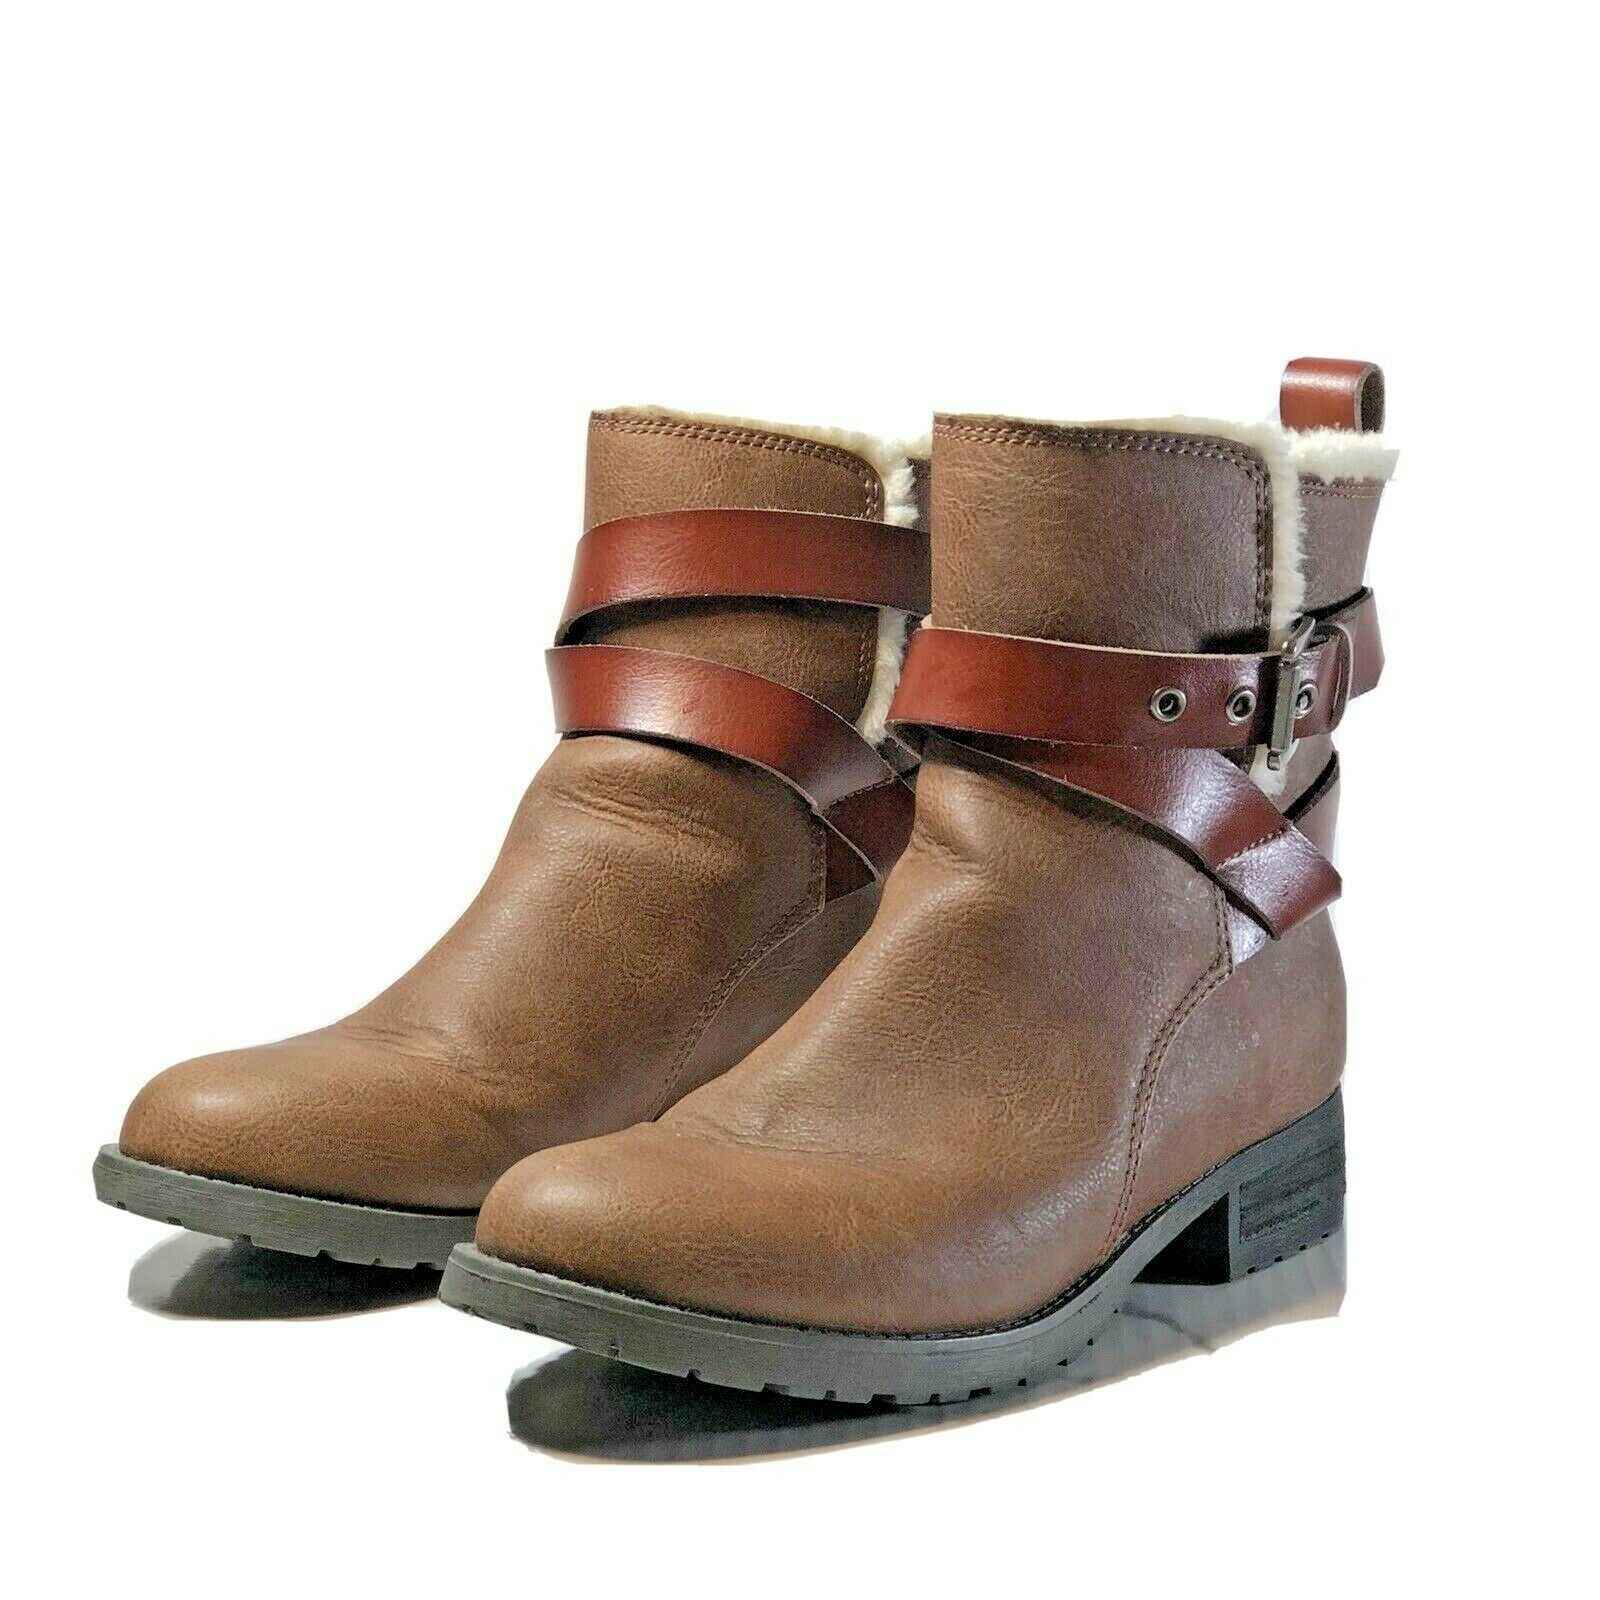 American Eagle Outfitters Womens size 6 Ankle Boots Faux fur lined Brown Booties - $26.72